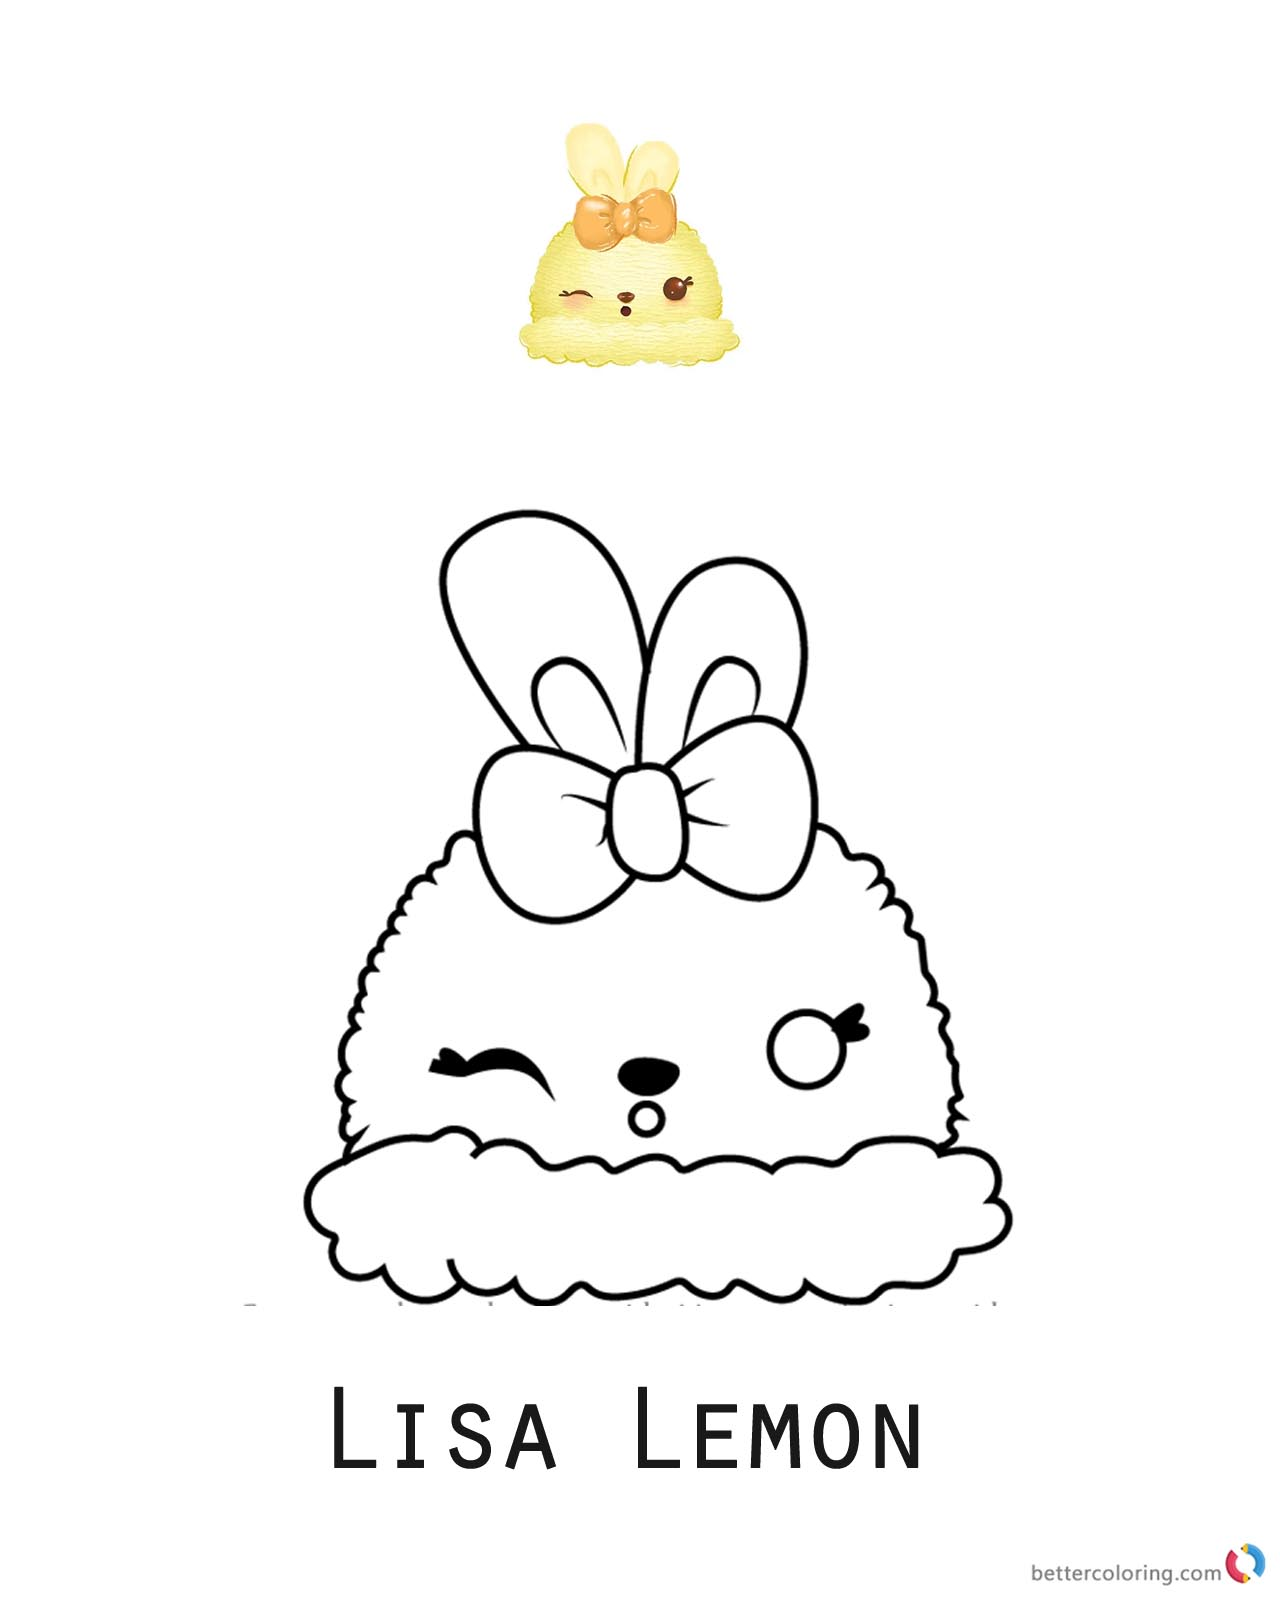 Lisa Lemon from Num Noms coloring pages printable